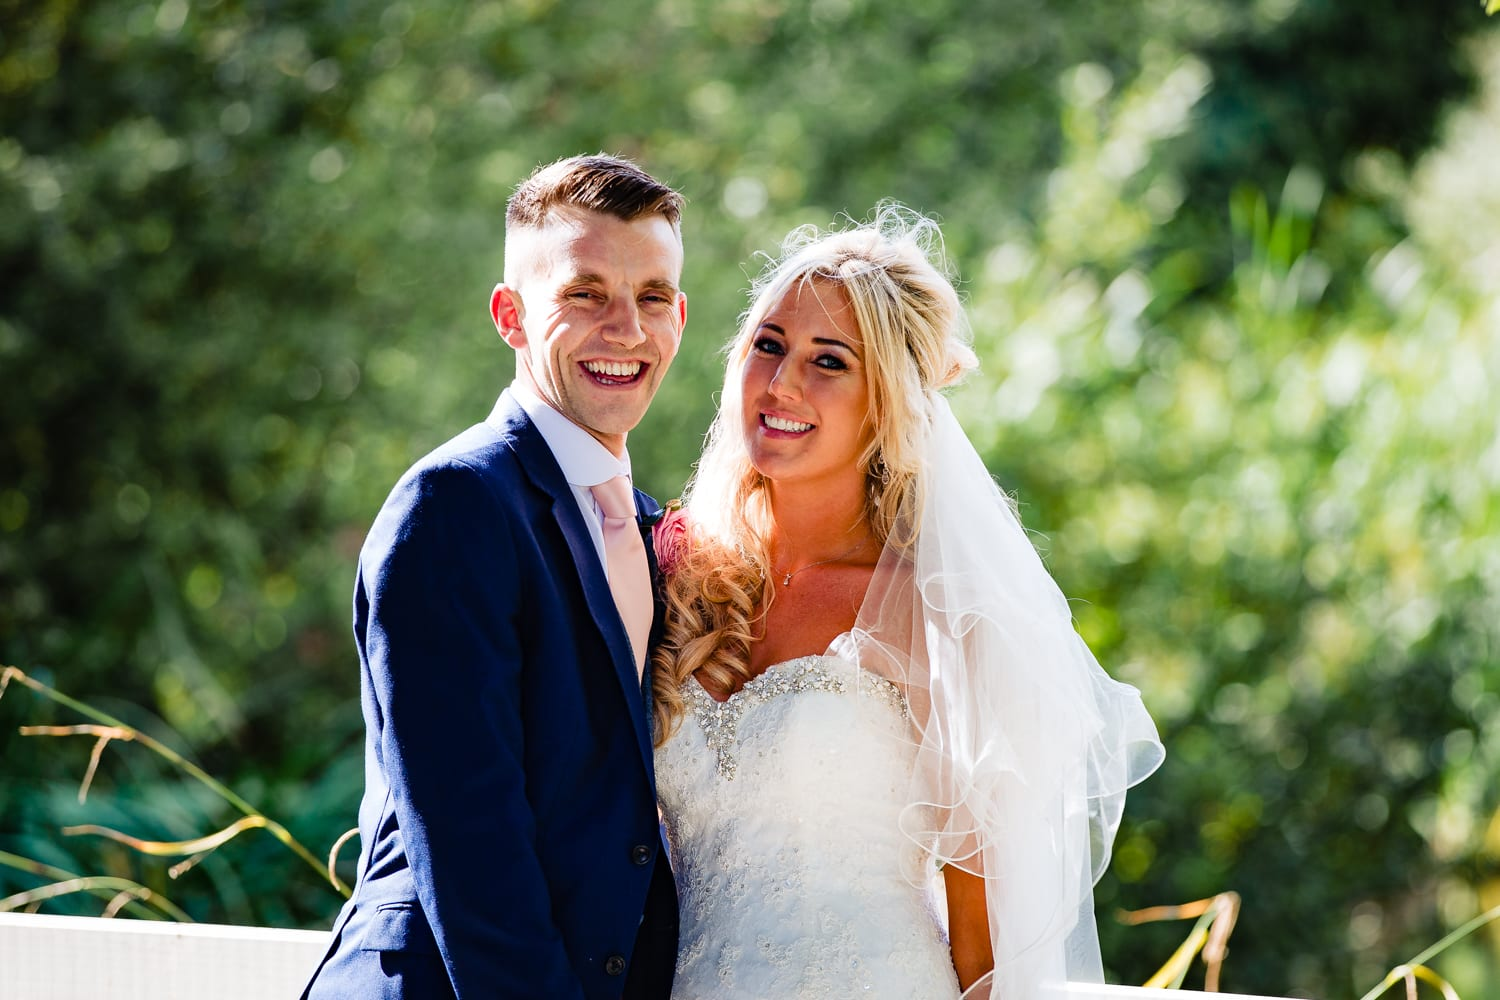 bride and groom portrait -wedding photography Essex